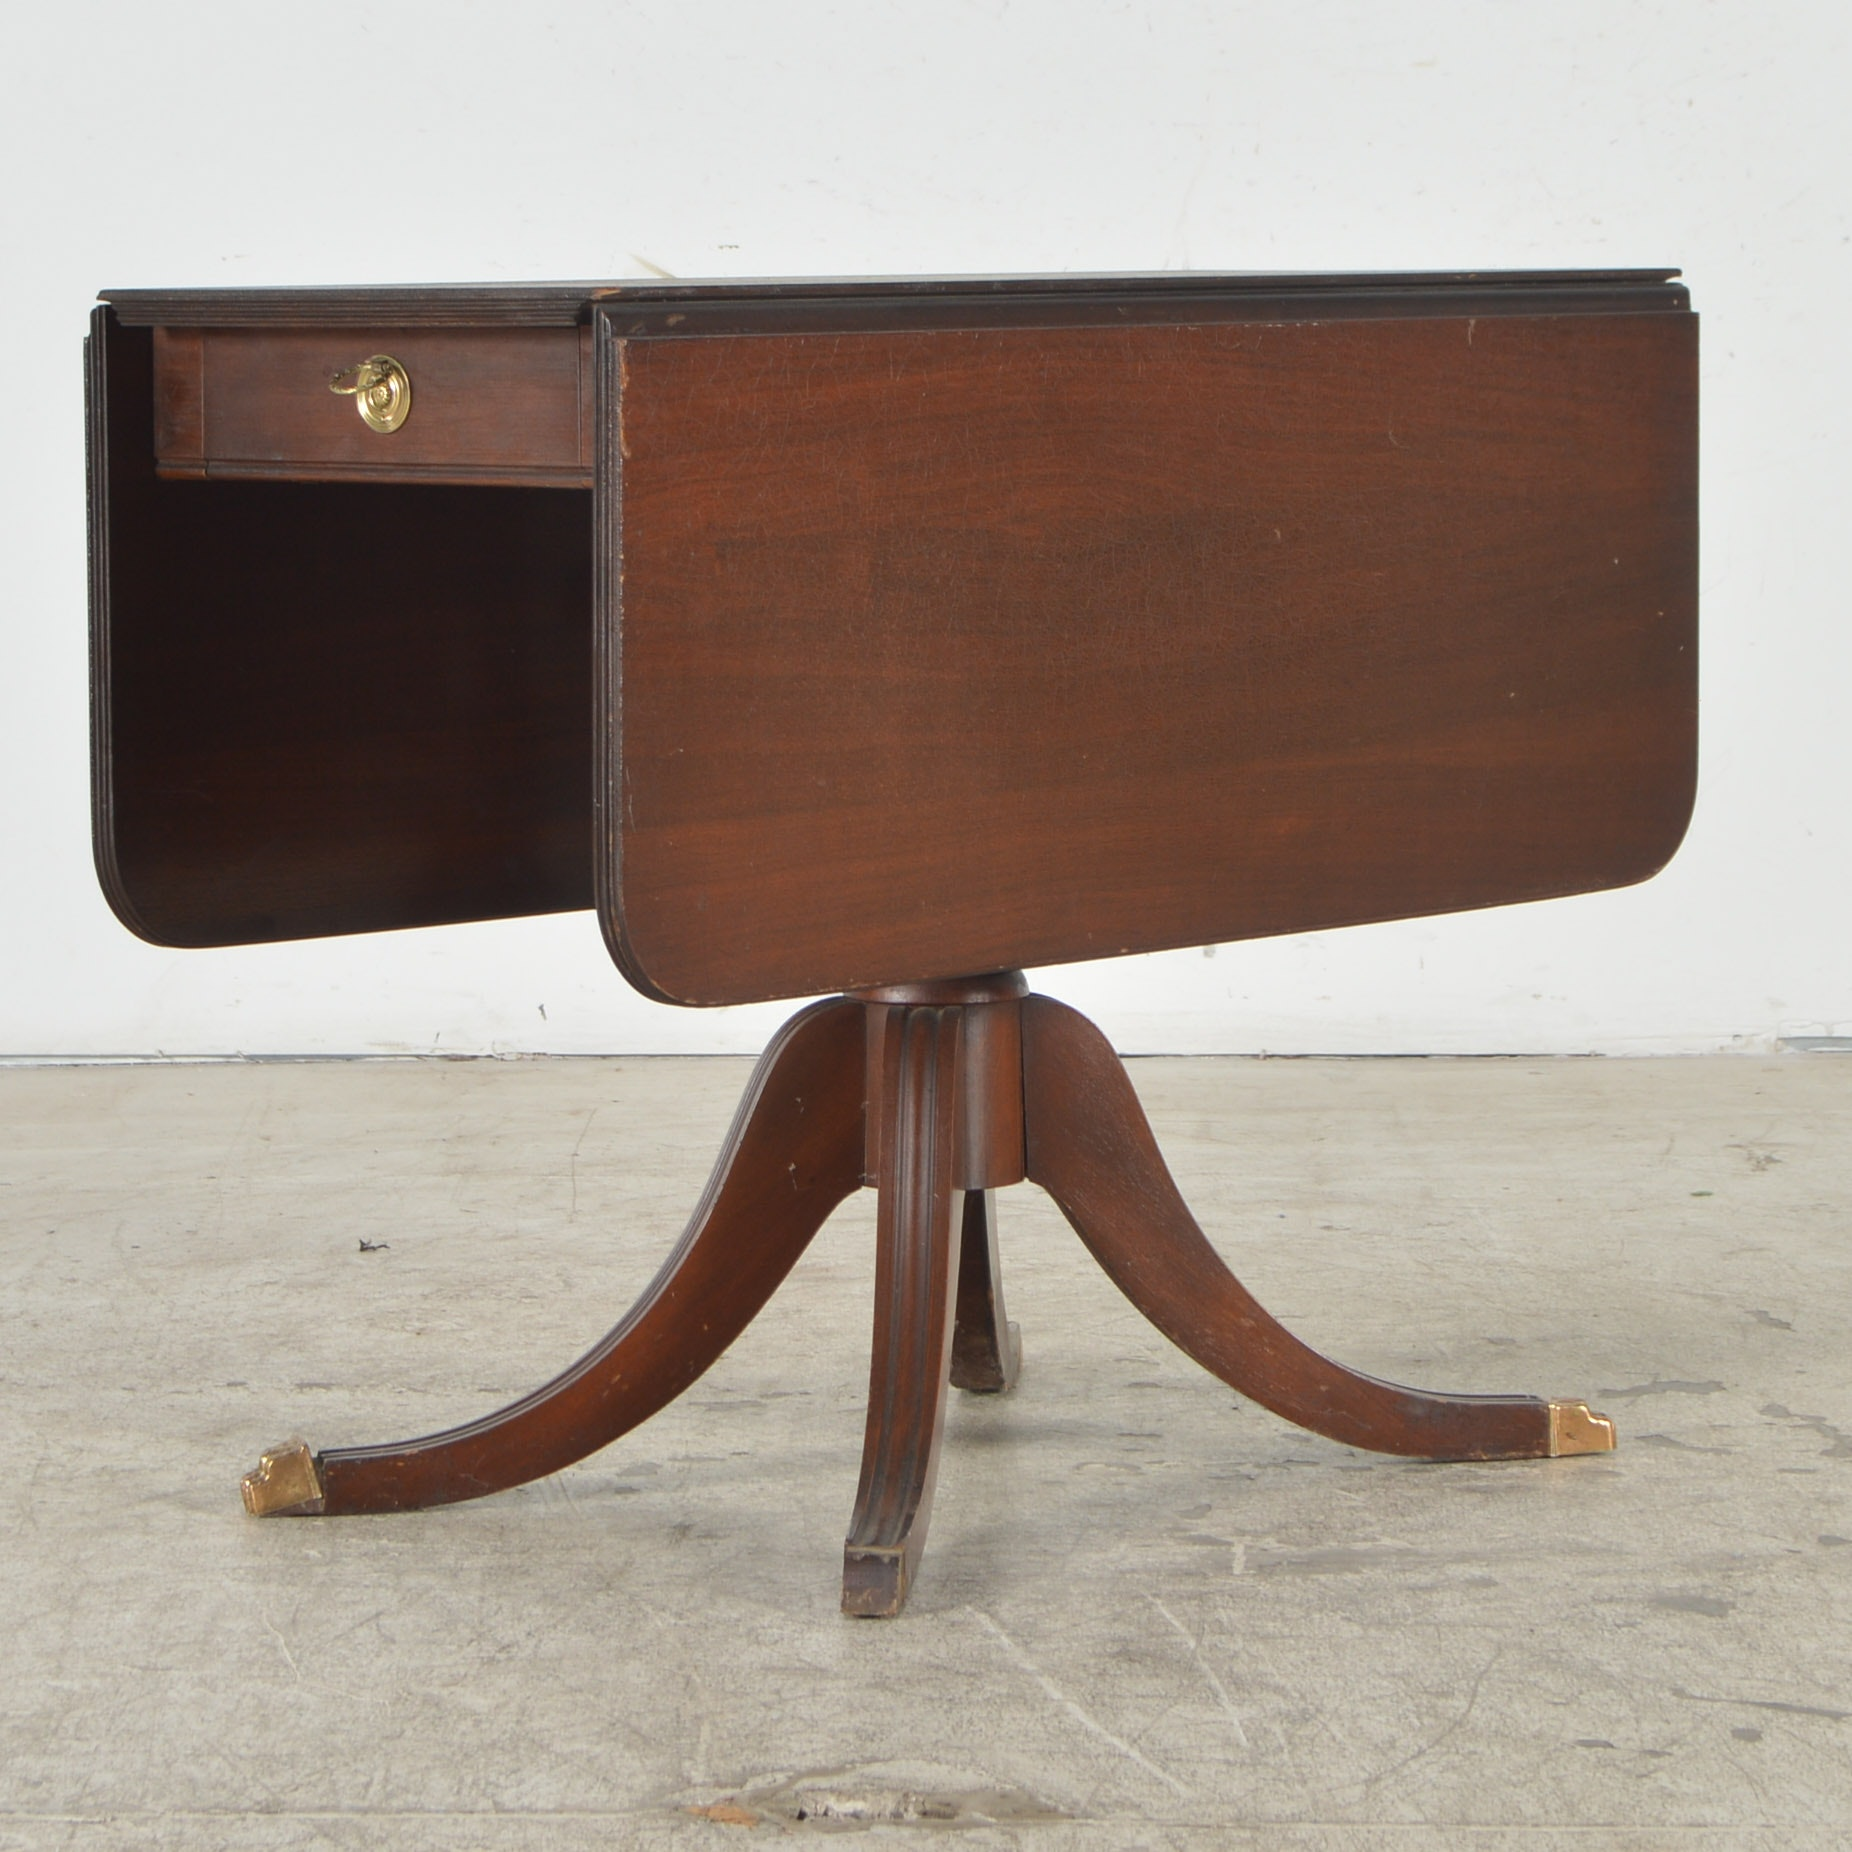 Duncan Phyfe Style Mahogany Drop Leaf Table